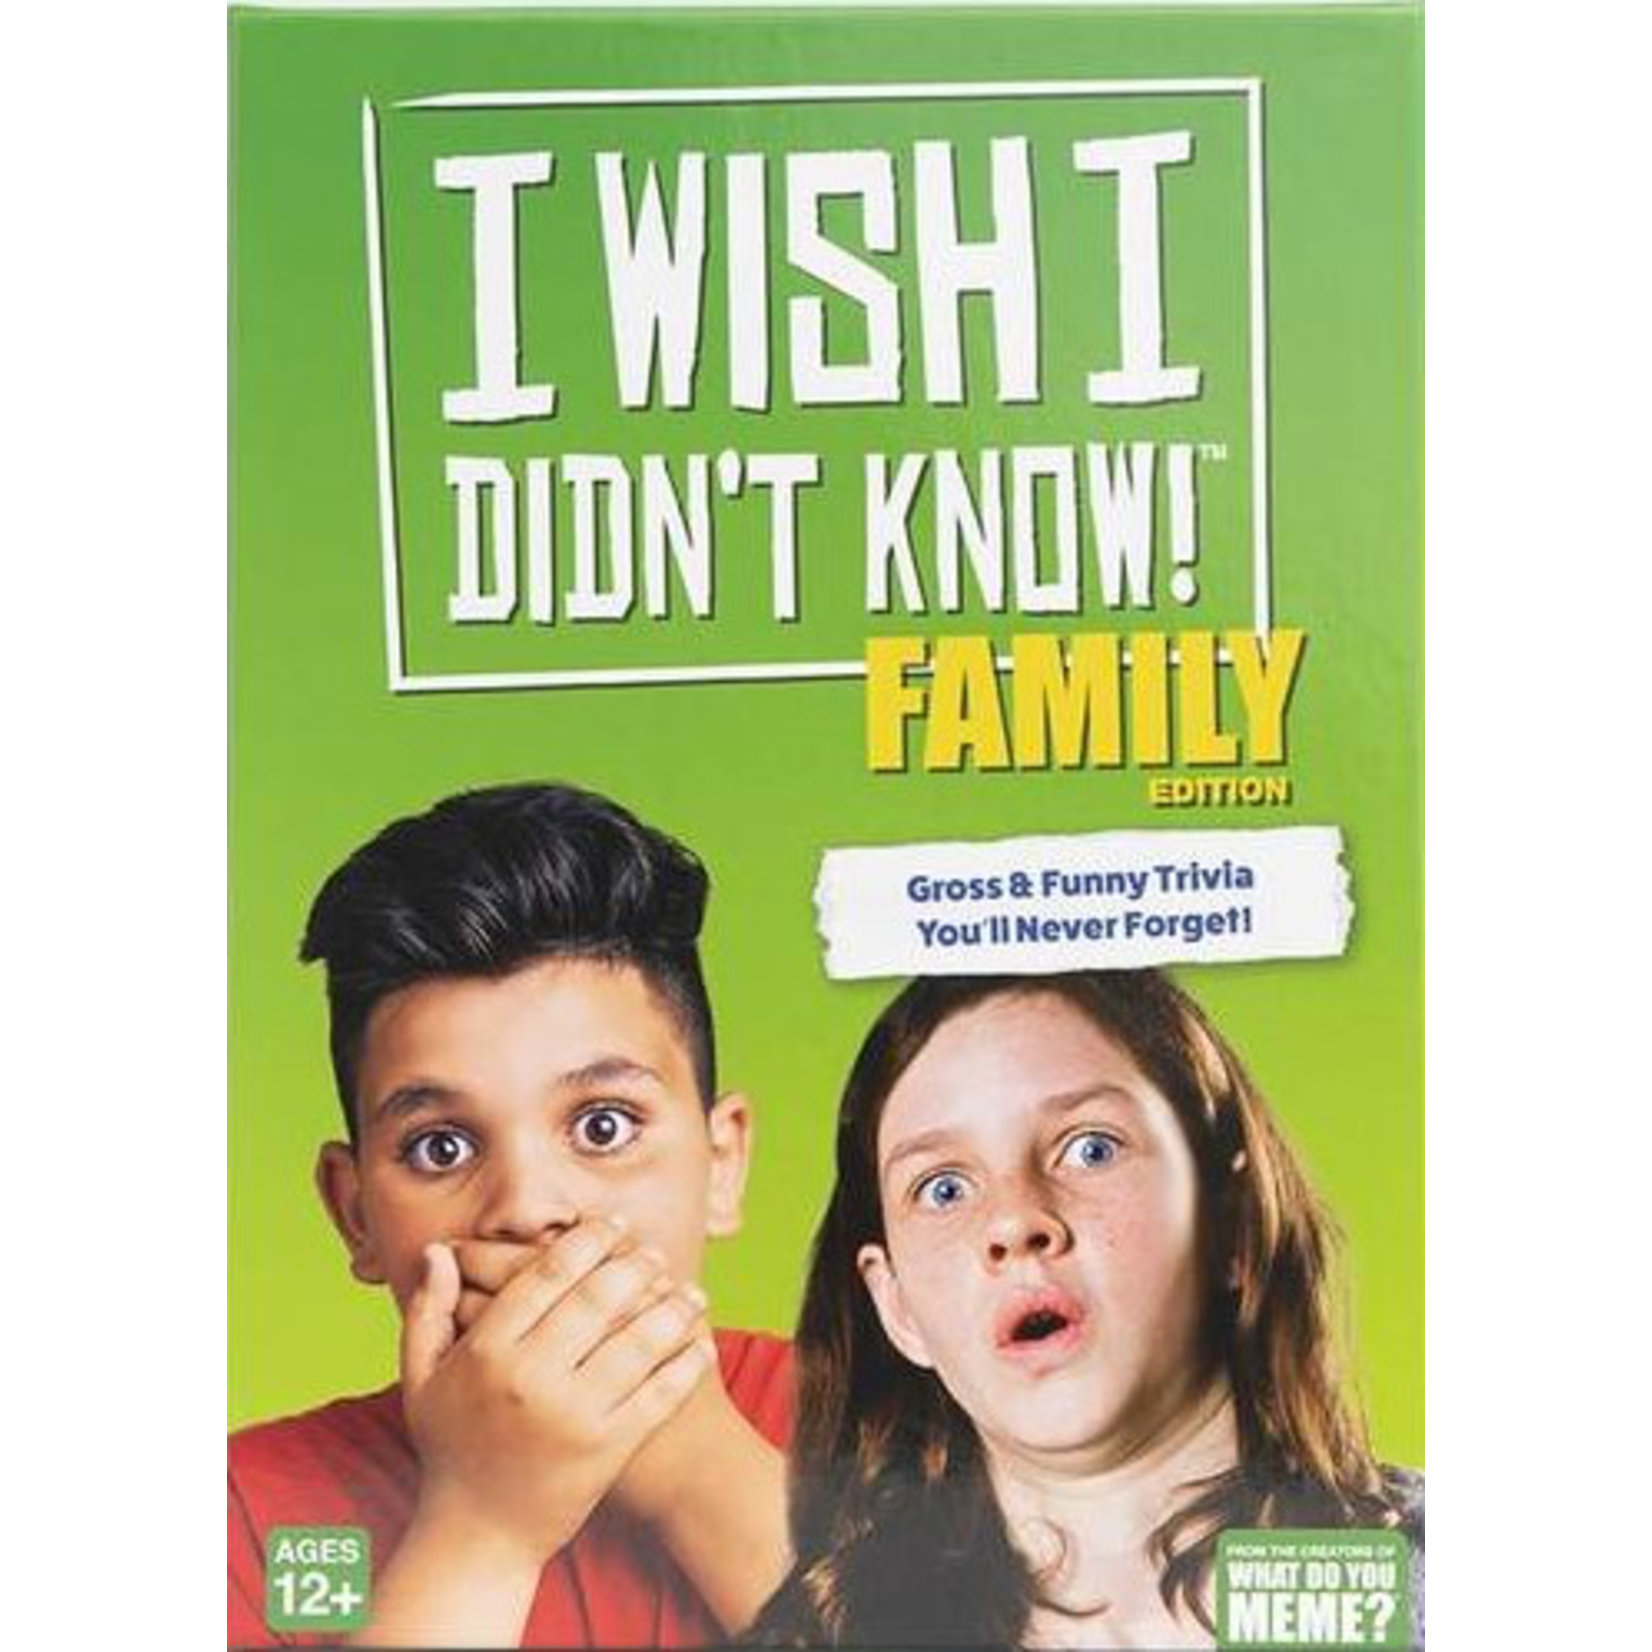 I Wish I Didn't Know! Family Edition